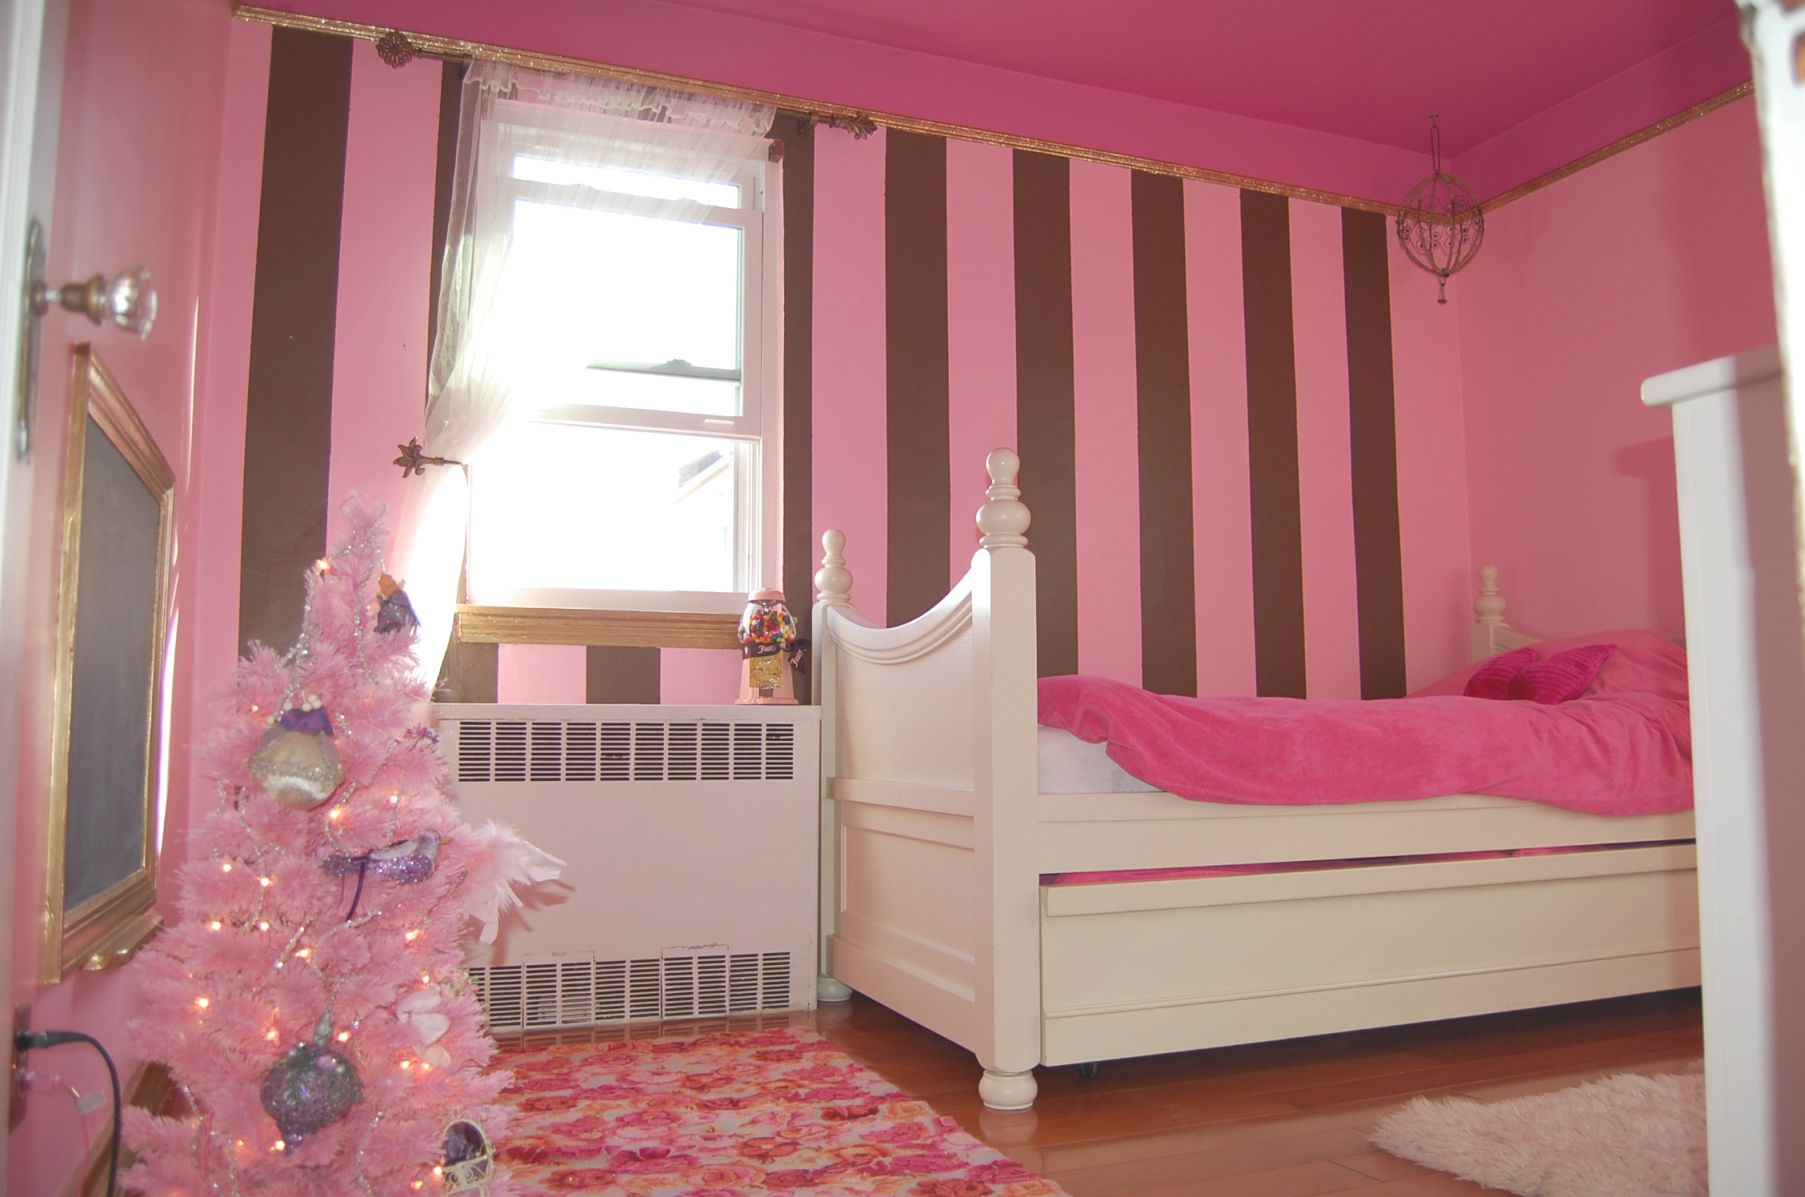 Bedroom : Room Ideas Girls Bedroom Plus Teenage Girl Bedroom for Bedroom Decorating Ideas For Girls